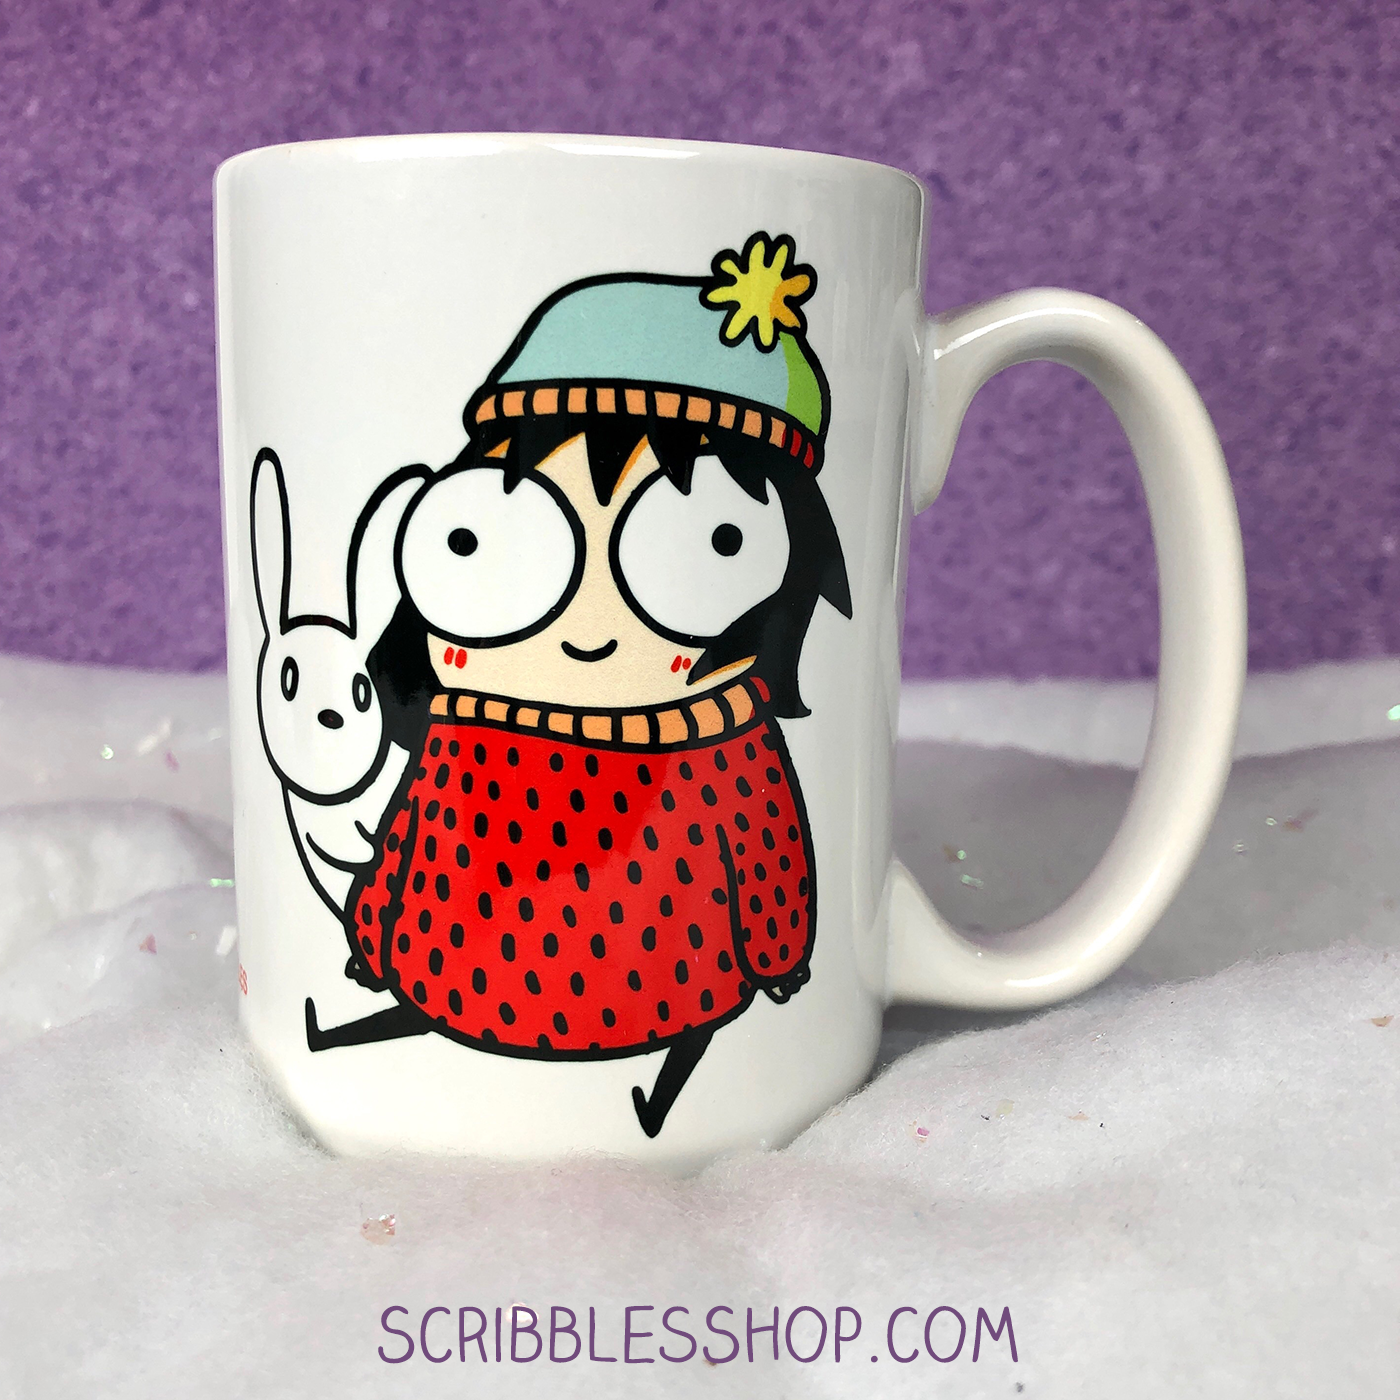 Bundled Up Limited Edition Mug